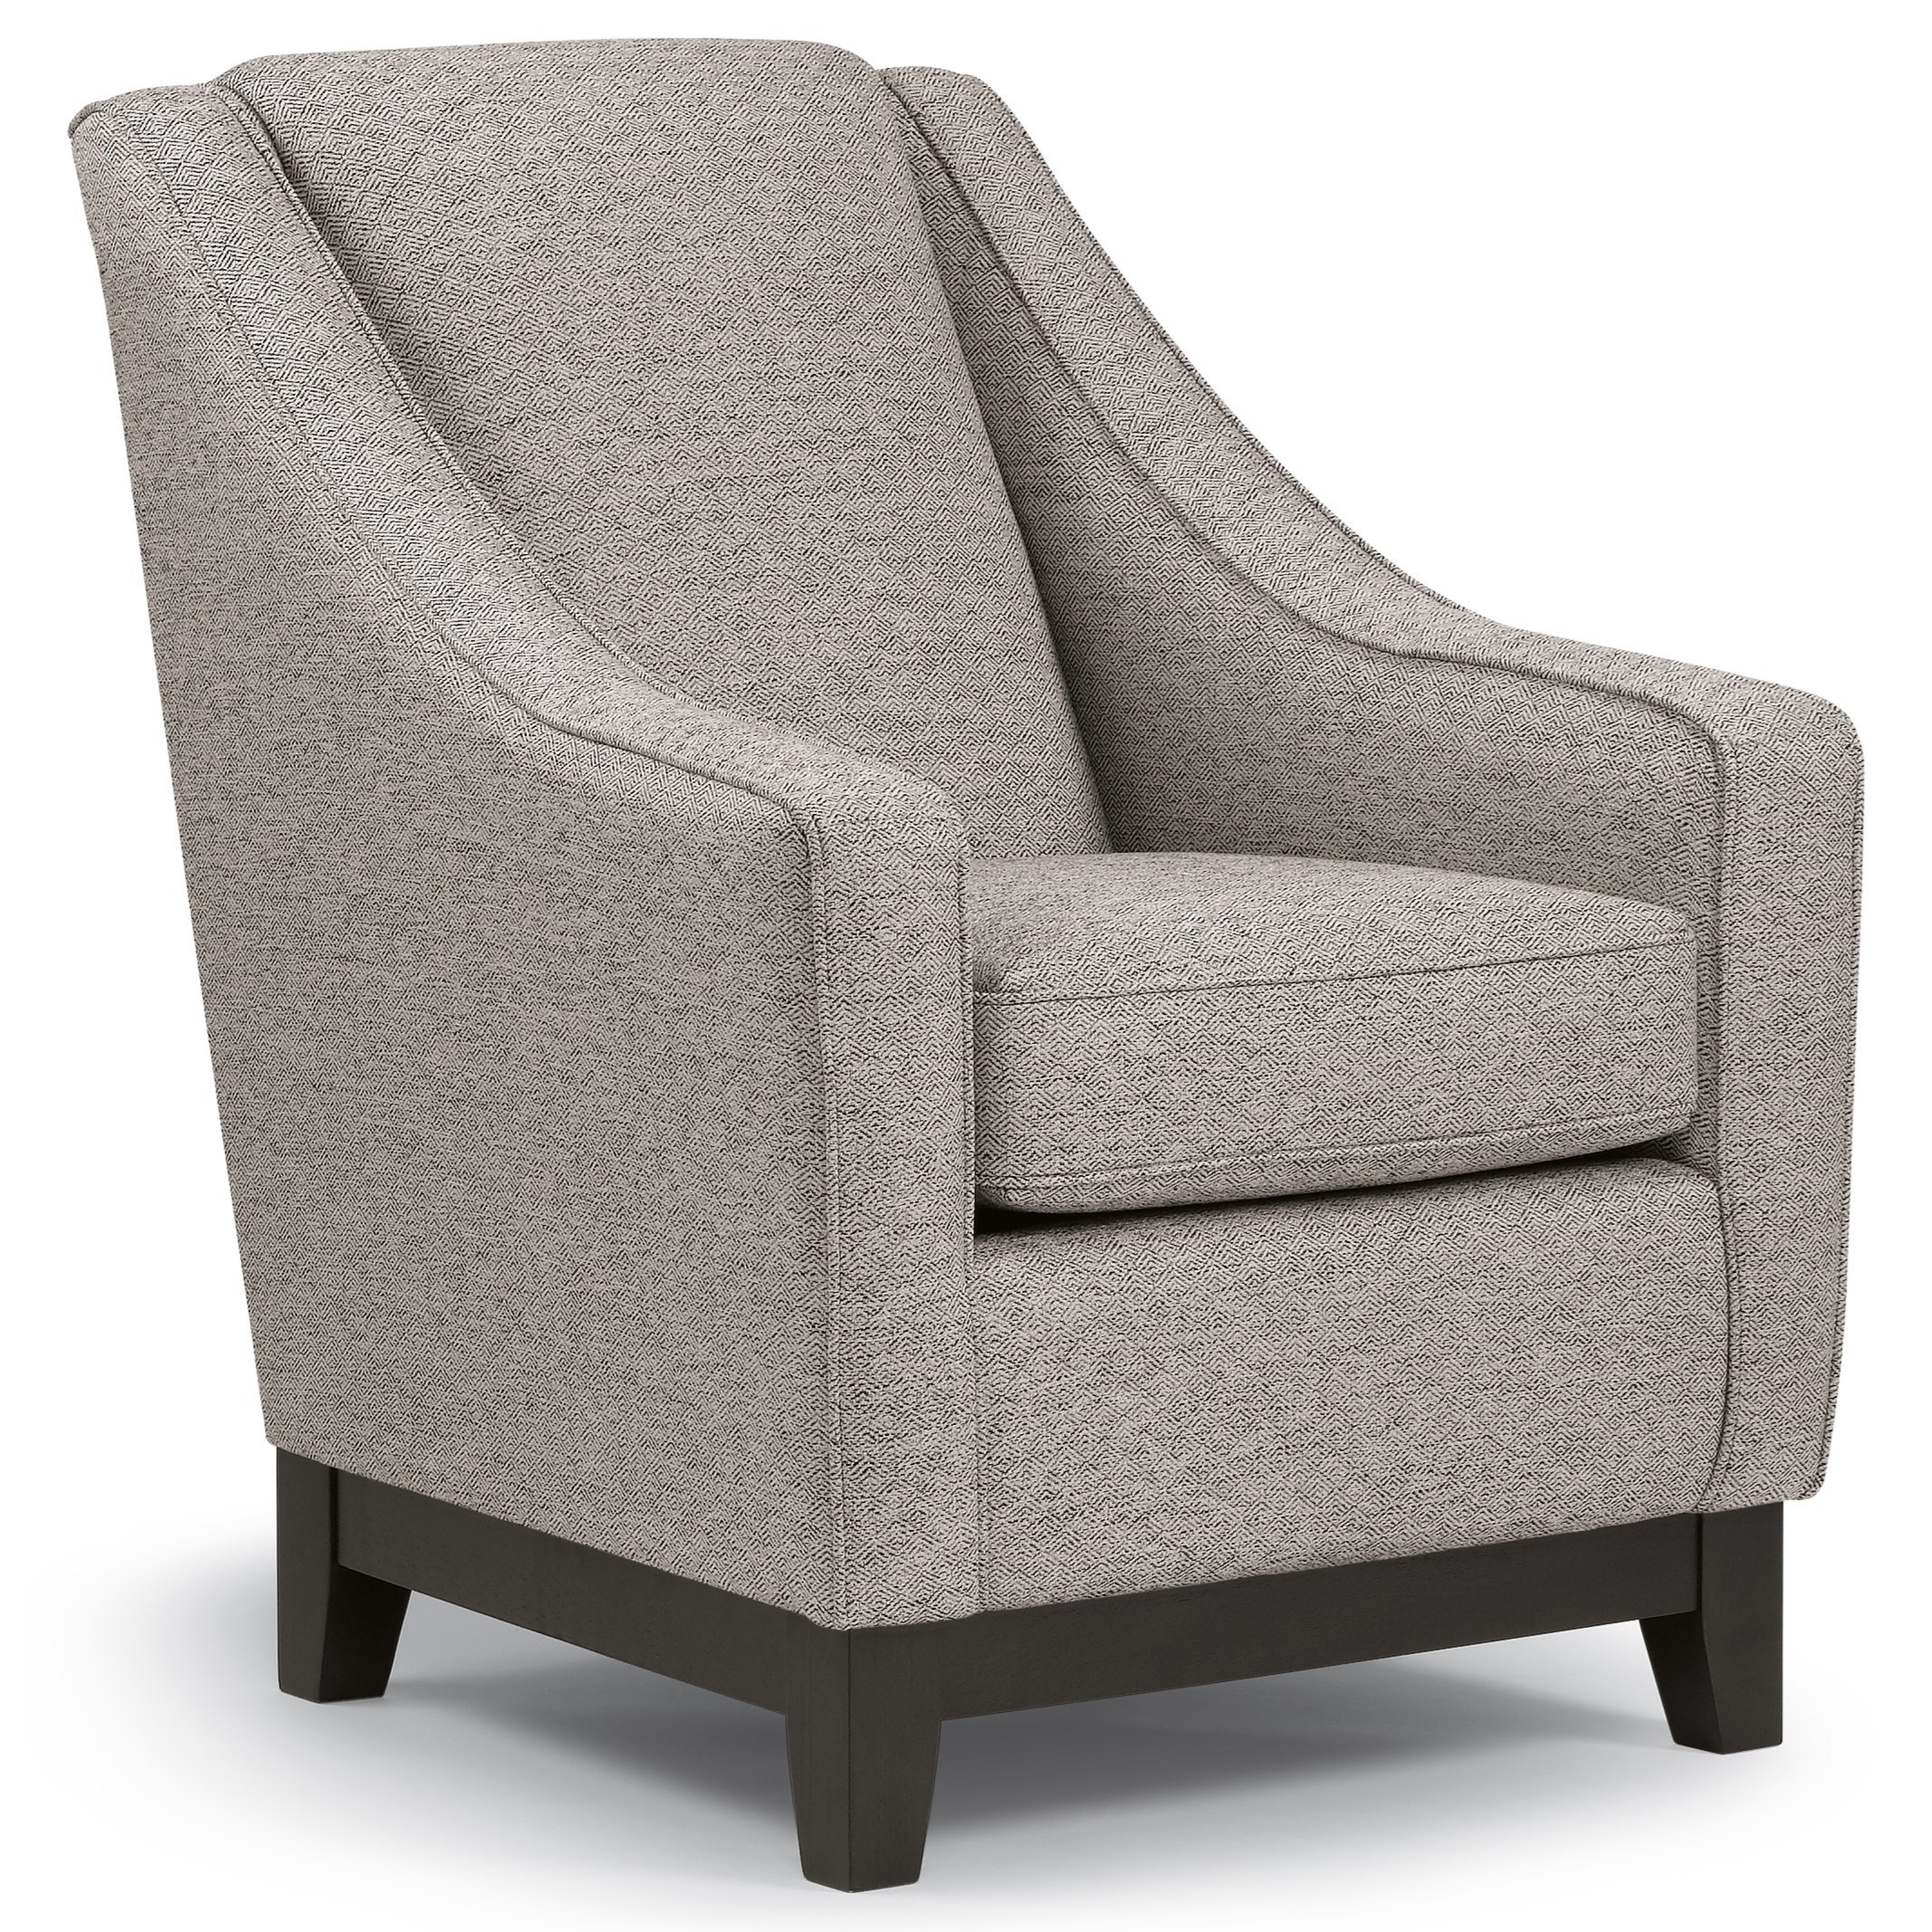 Club Chairs Mariko Club Chair by Best Home Furnishings at Lapeer Furniture & Mattress Center